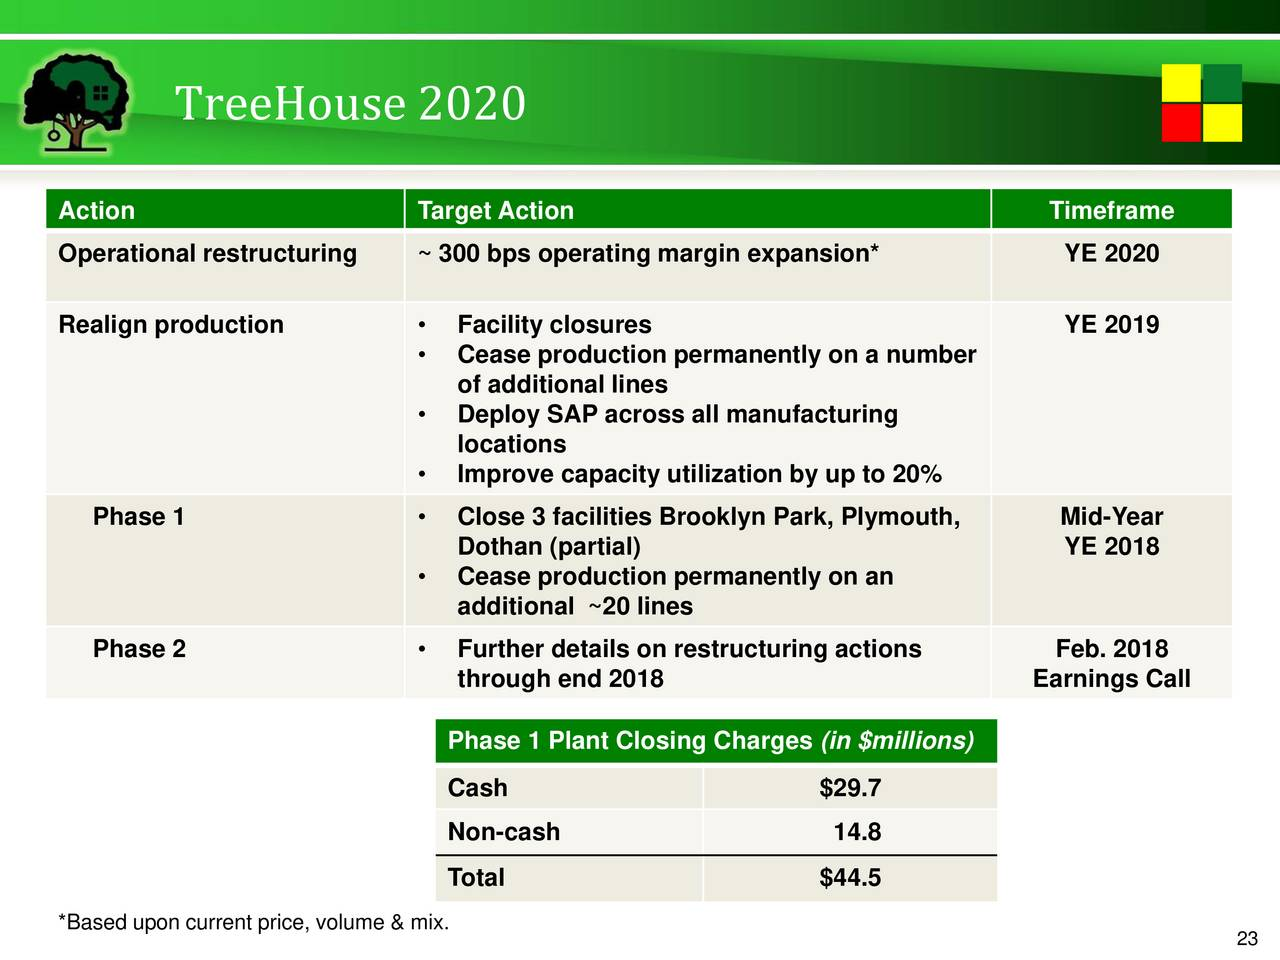 treehouse foods 3 year analysis Treehouse foods stock analysis, treehouse foods valuation, pe ratio long term revenue growth has been strong with a 5 year compounded annual growth of 236.